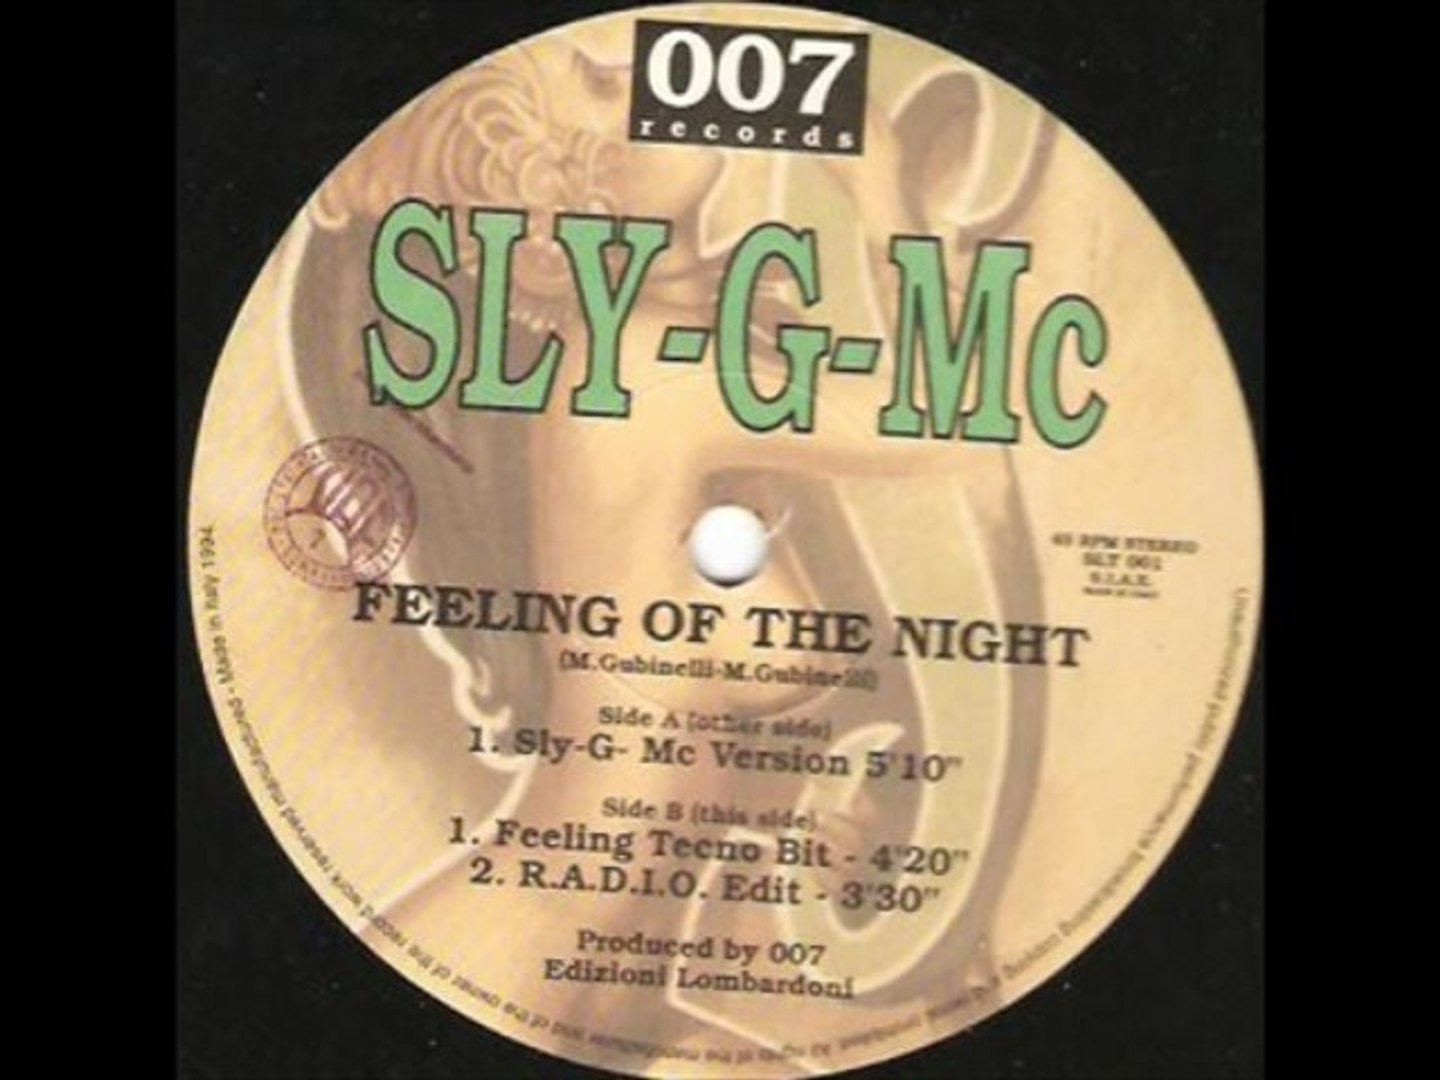 Sly-G-MC - Feeling Of The Night (Feeling Tecno Bit)